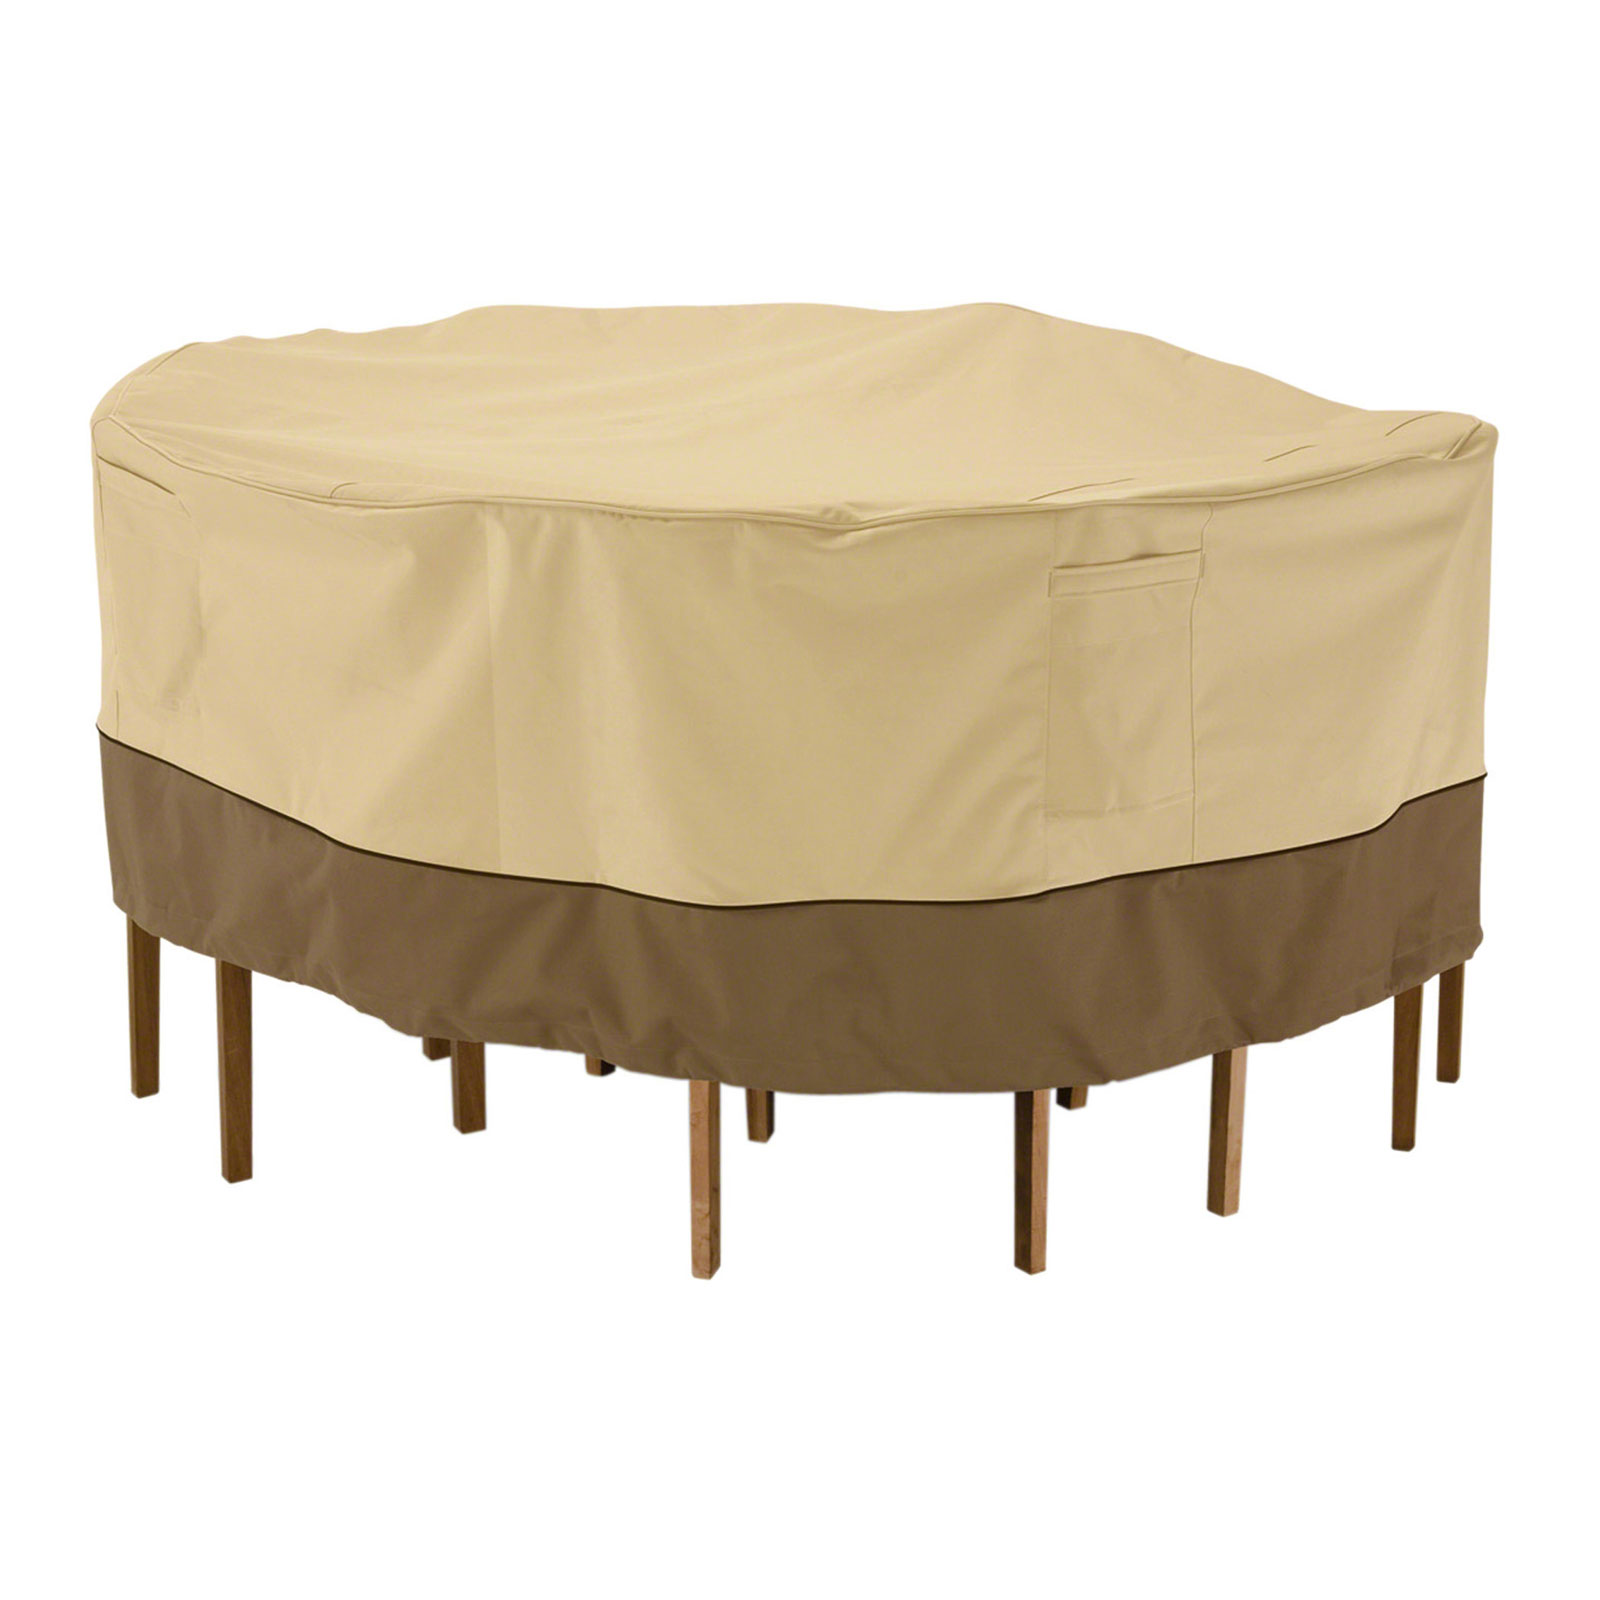 Patio cover table and chairs in patio furniture covers for Deck table and chairs